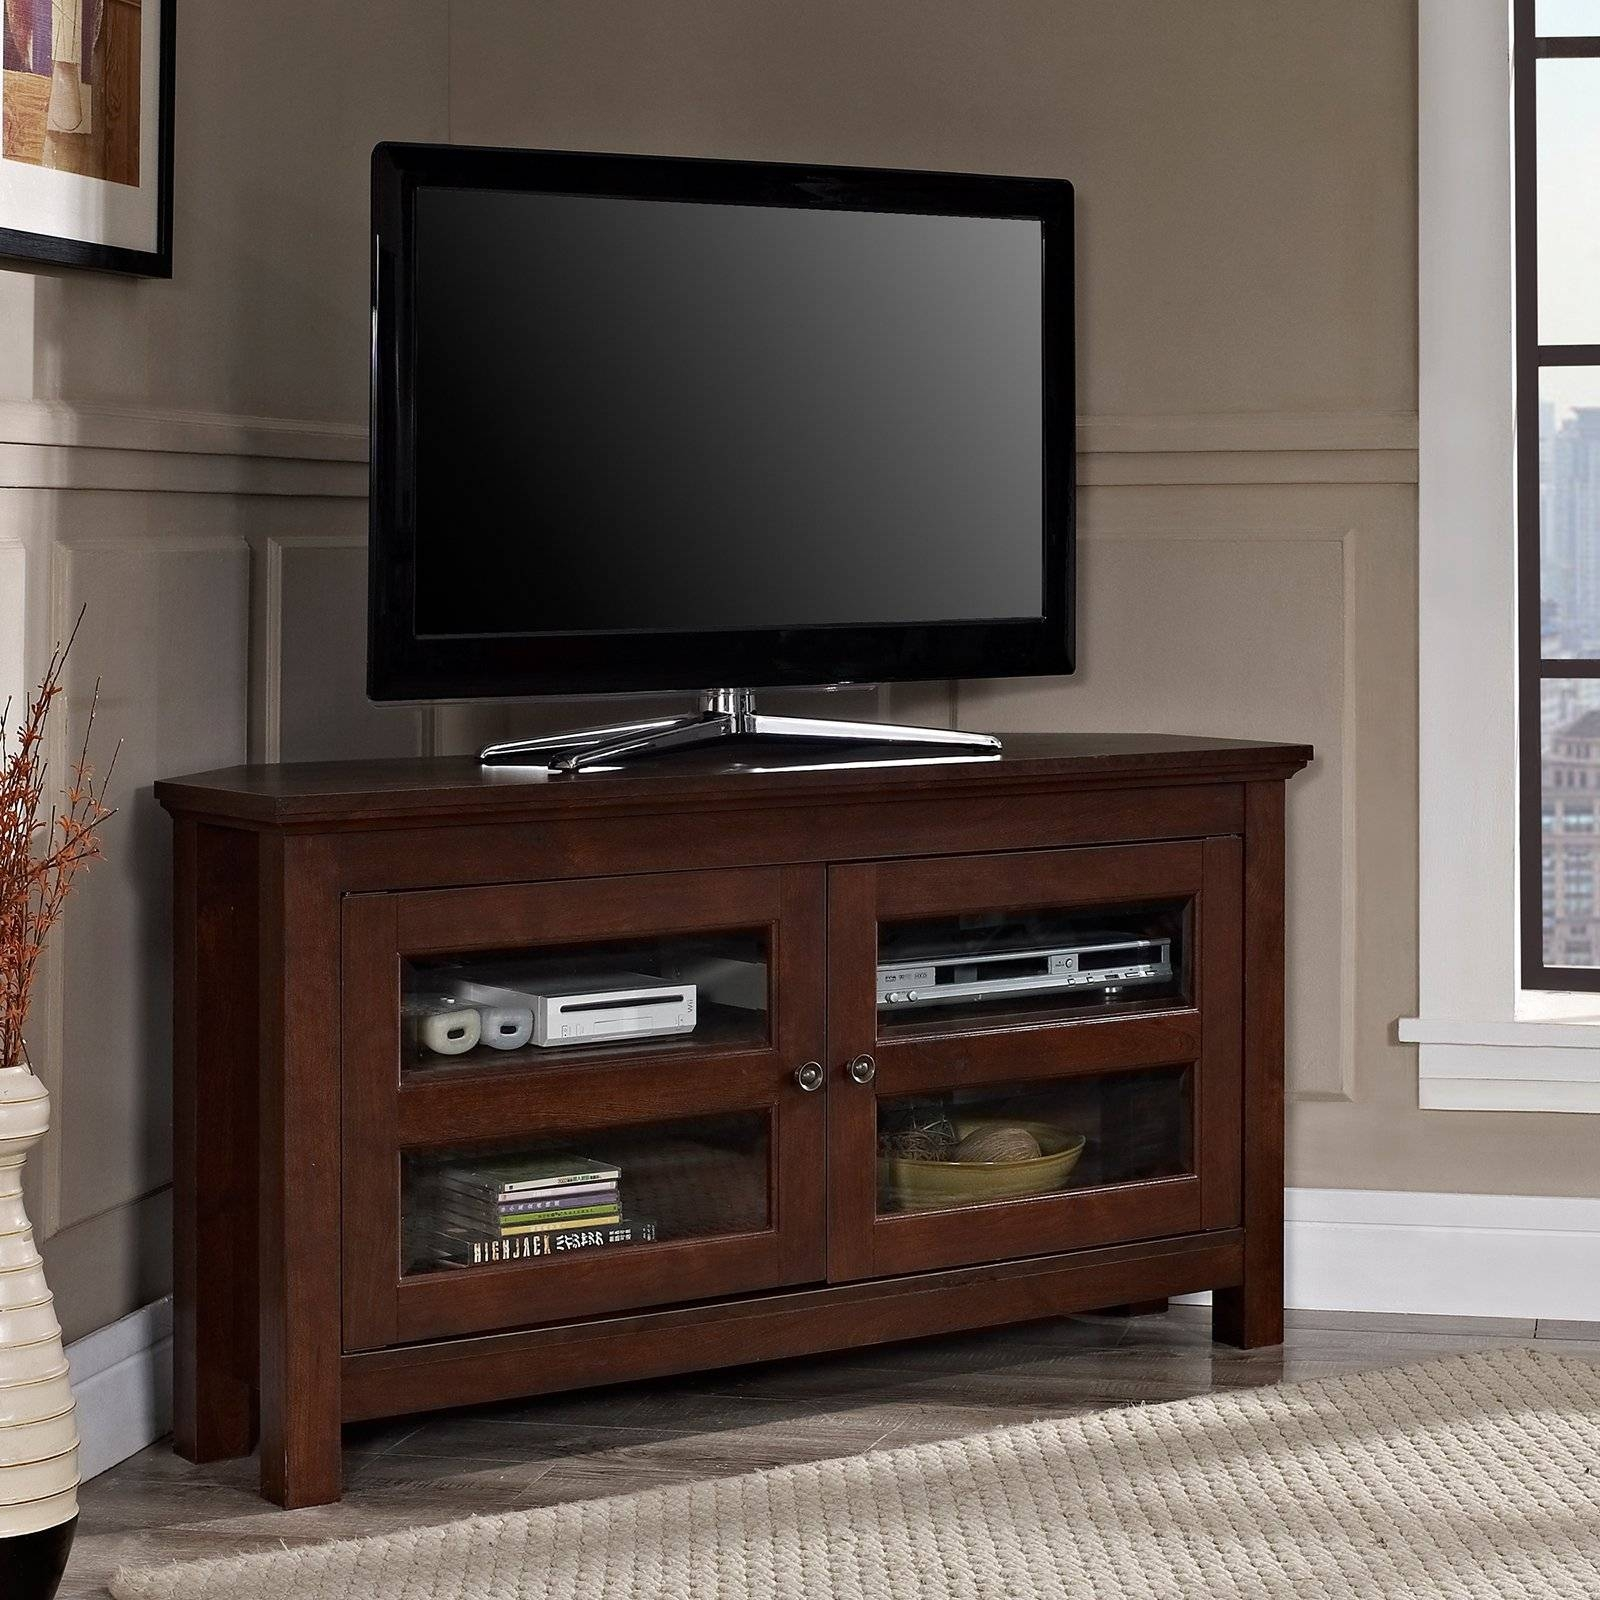 Sauder 42 In. Barrister Lane Corner Tv Stand - Salt Oak | Hayneedle within Wooden Corner Tv Cabinets (Image 8 of 15)